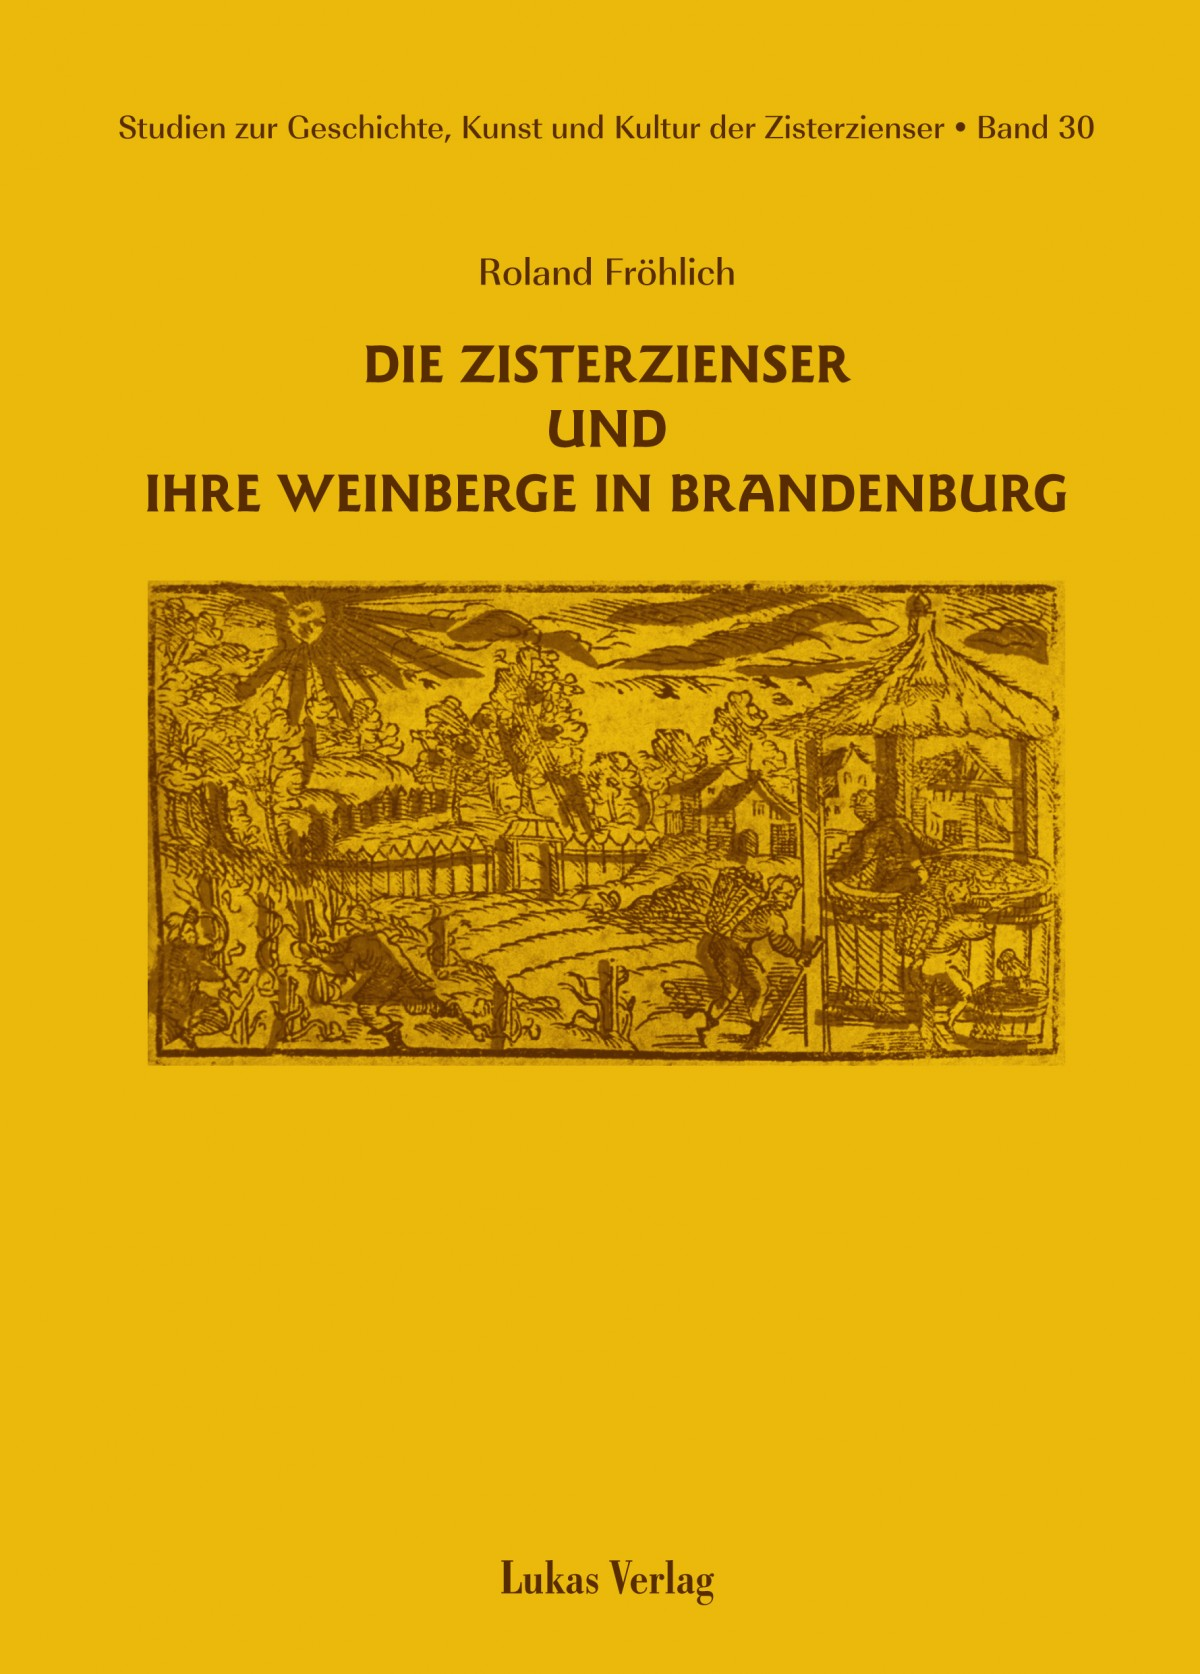 Die Zisterzienser und ihre Weinberge in Brandenburg